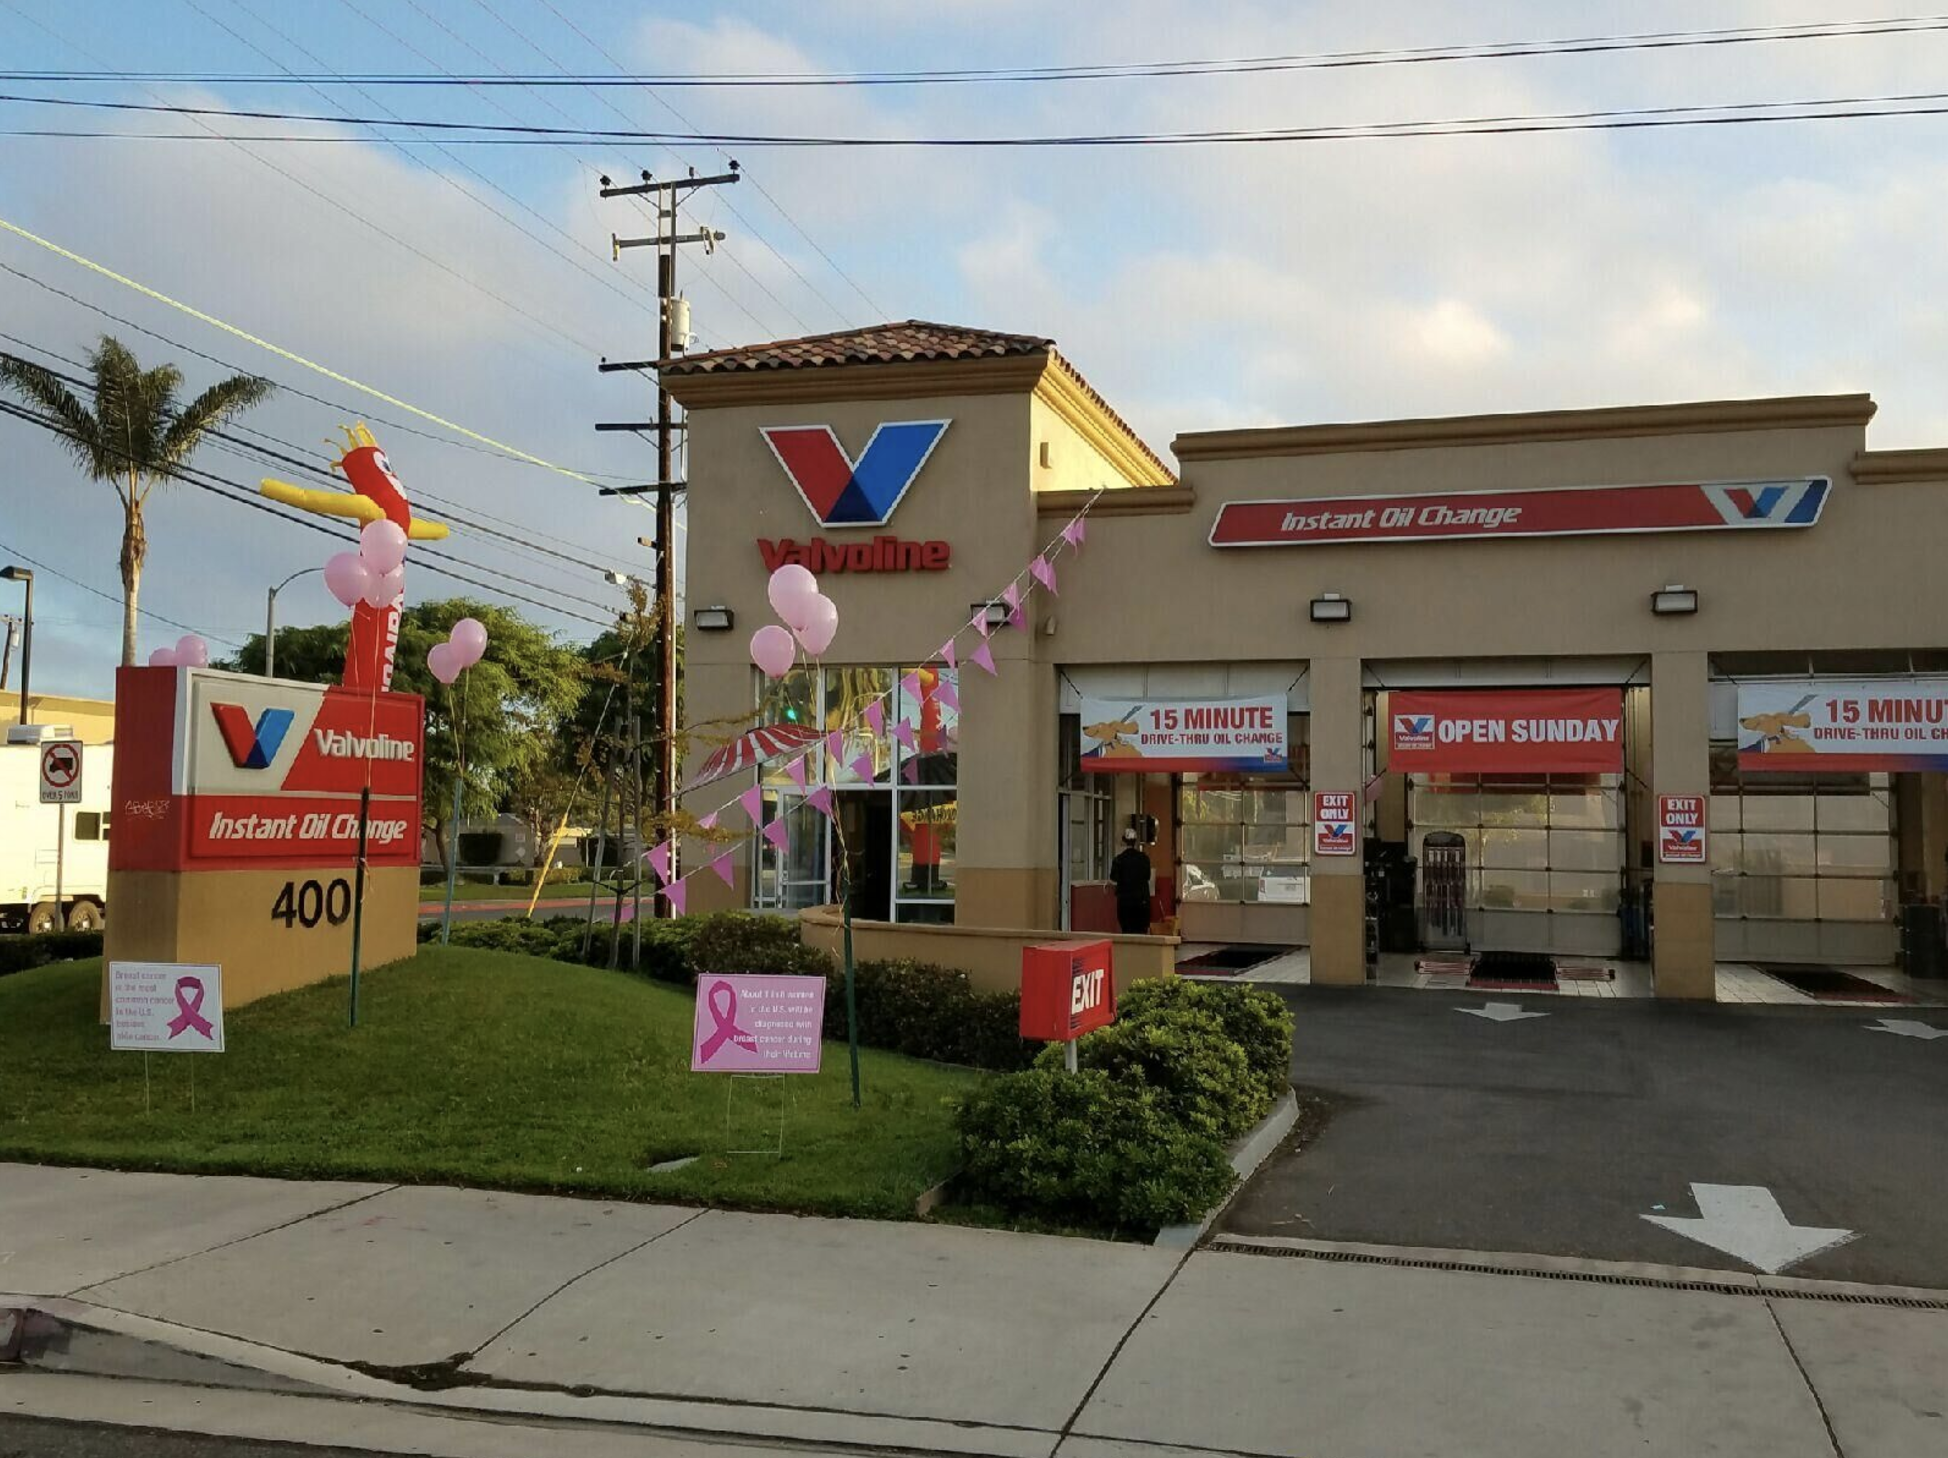 You can get a full service 15-minute drive-thru oil change at Valvoline Instant Oil Change and no appointment is necessary!